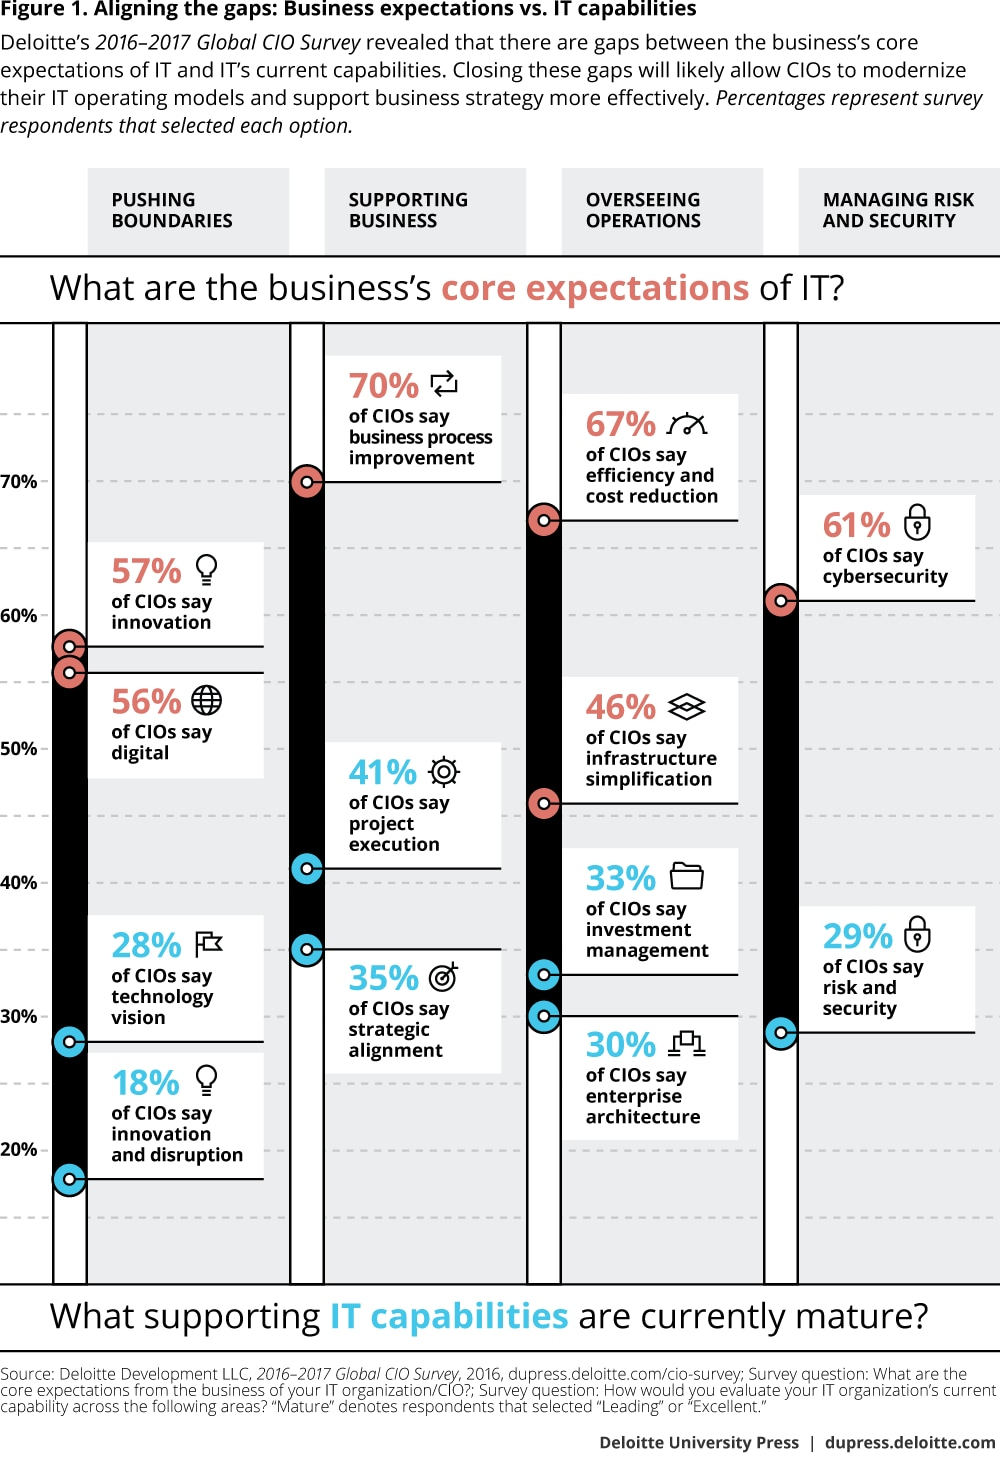 Aligning the gaps: Business expectations vs. IT capabilities